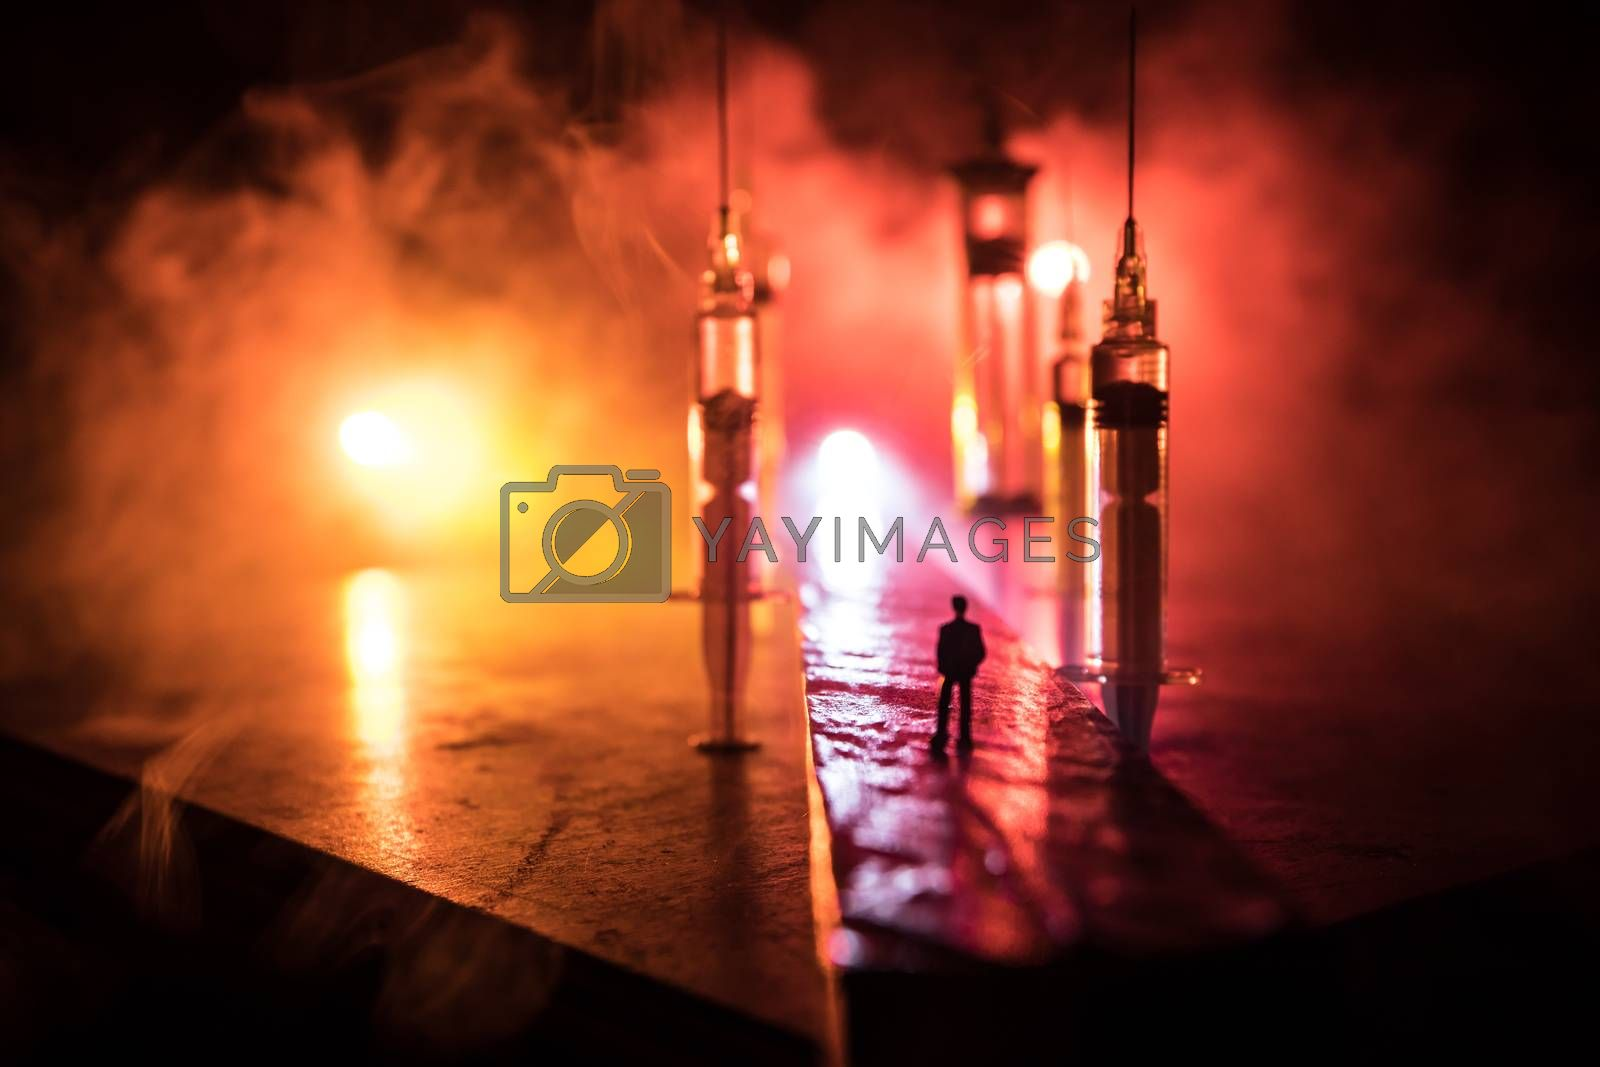 Narcotic drug problem concept. Silhouette of a man standing in the middle of the road on a misty night with giant Drug syringe and narcotic attributes. Creative artwork decoration